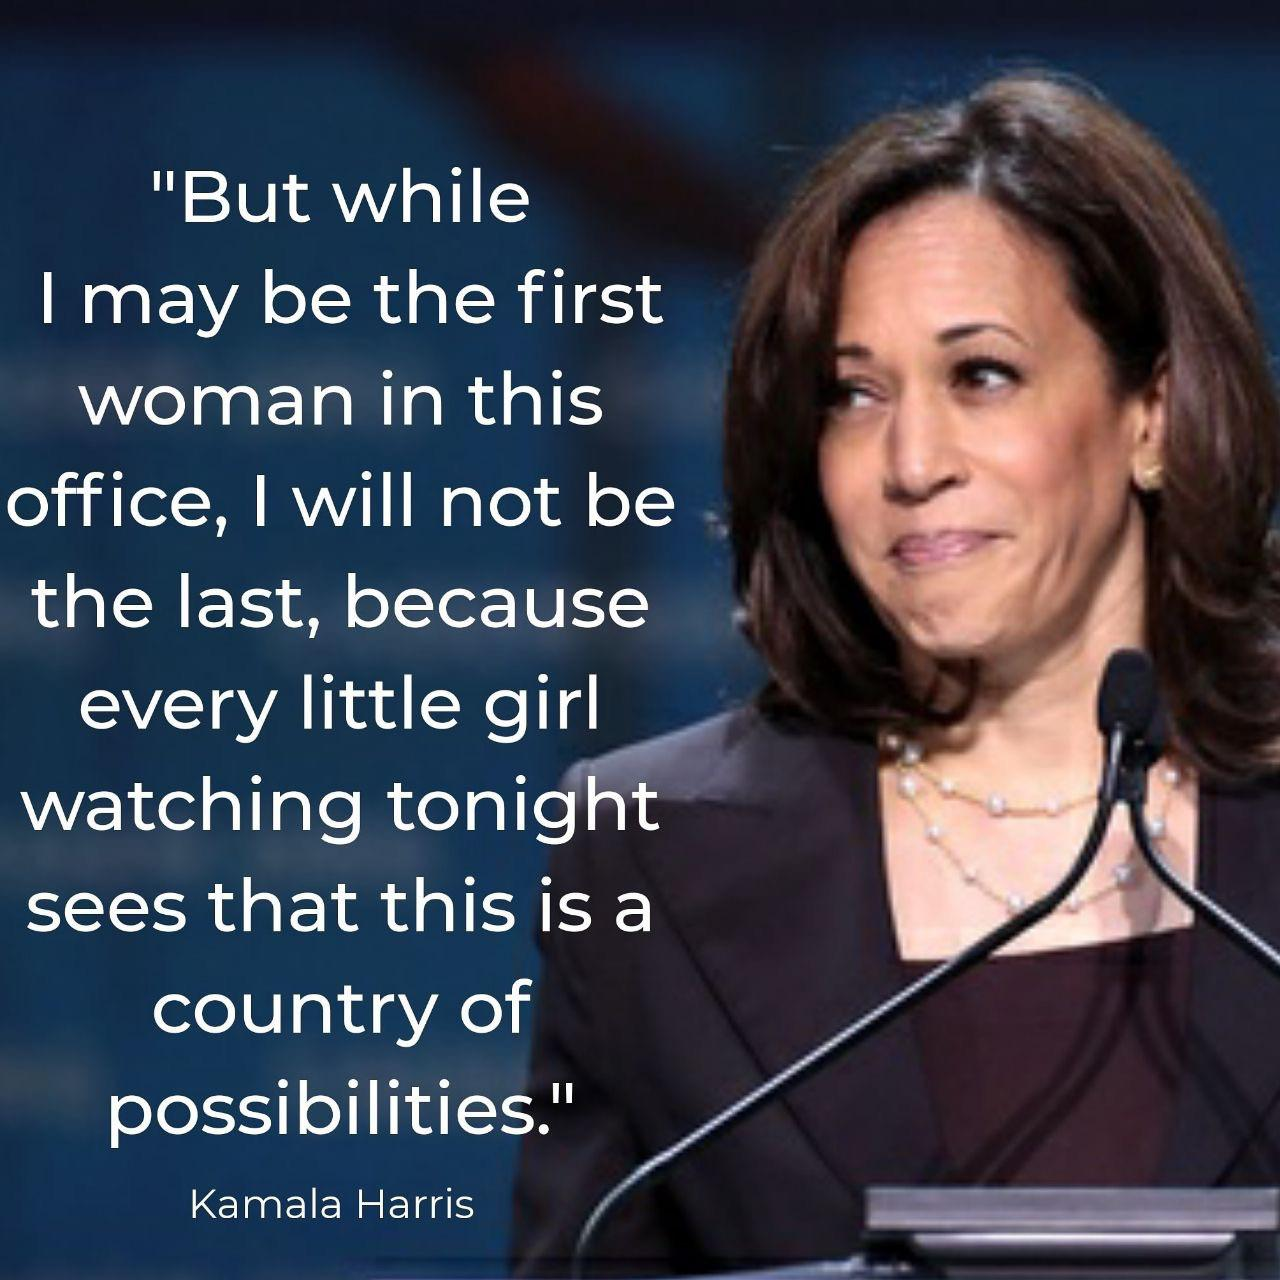 """But while I may be the first woman in this office, I will not be the last, because every little girl watching tonight sees that this is a country of possibilities"" Kamala Harris [1280×1280]"